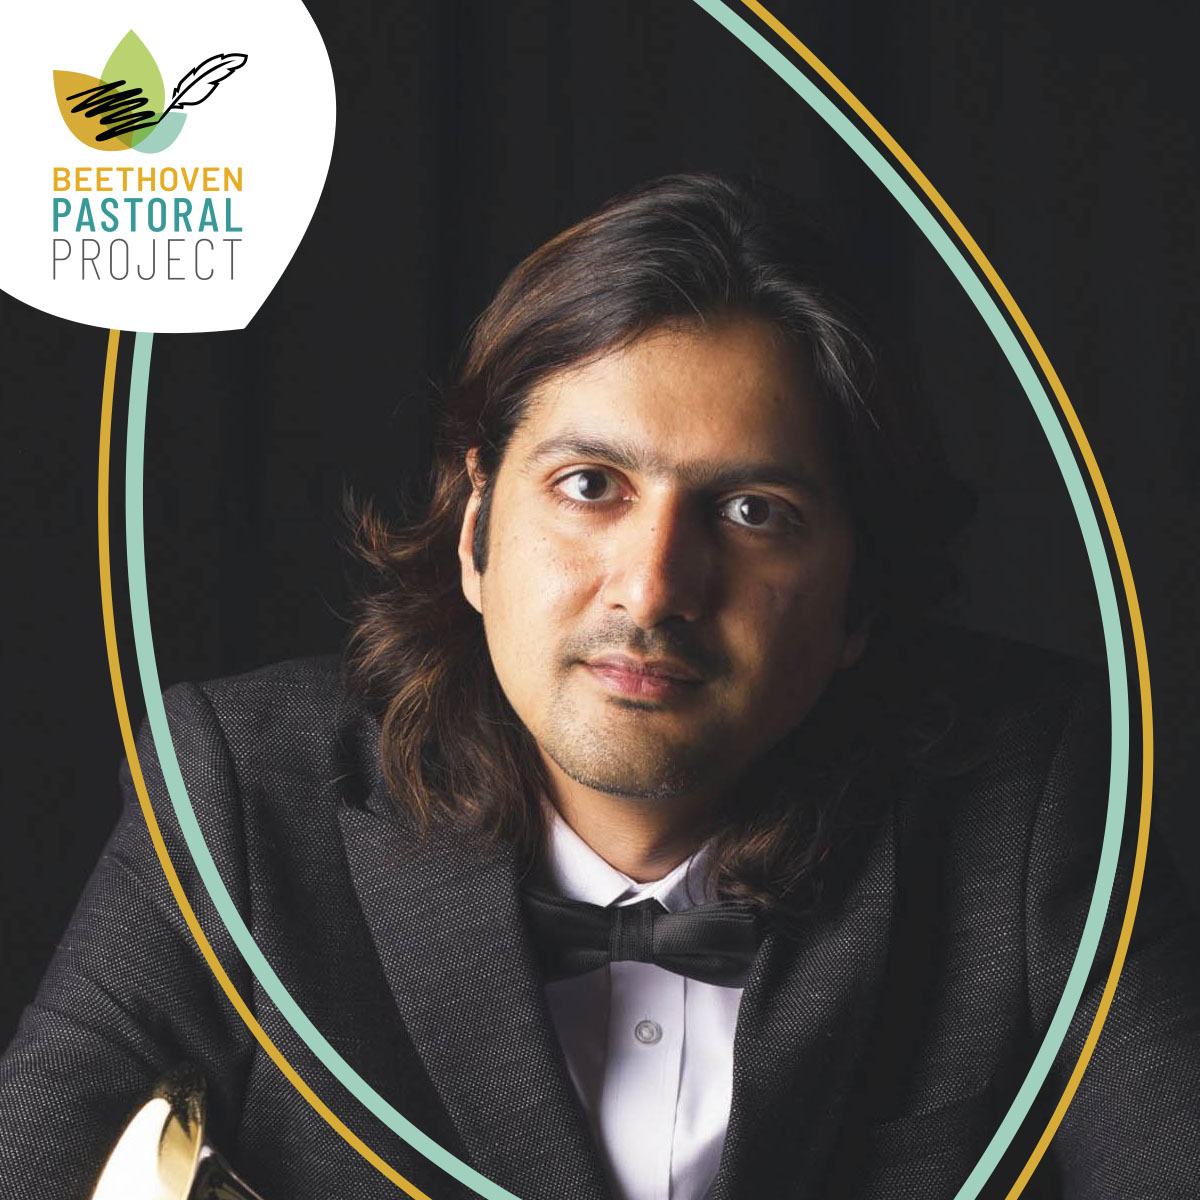 """Meet @rickykej the Indian crown prince of contemporary classical music! He's featured within the @DeutscheWelle film """"Sound of Nature"""" - feel free to enjoy the following video about his take on environmental protection  https://t.co/4gaWydAsE8 https://t.co/vOiYdPBHML"""